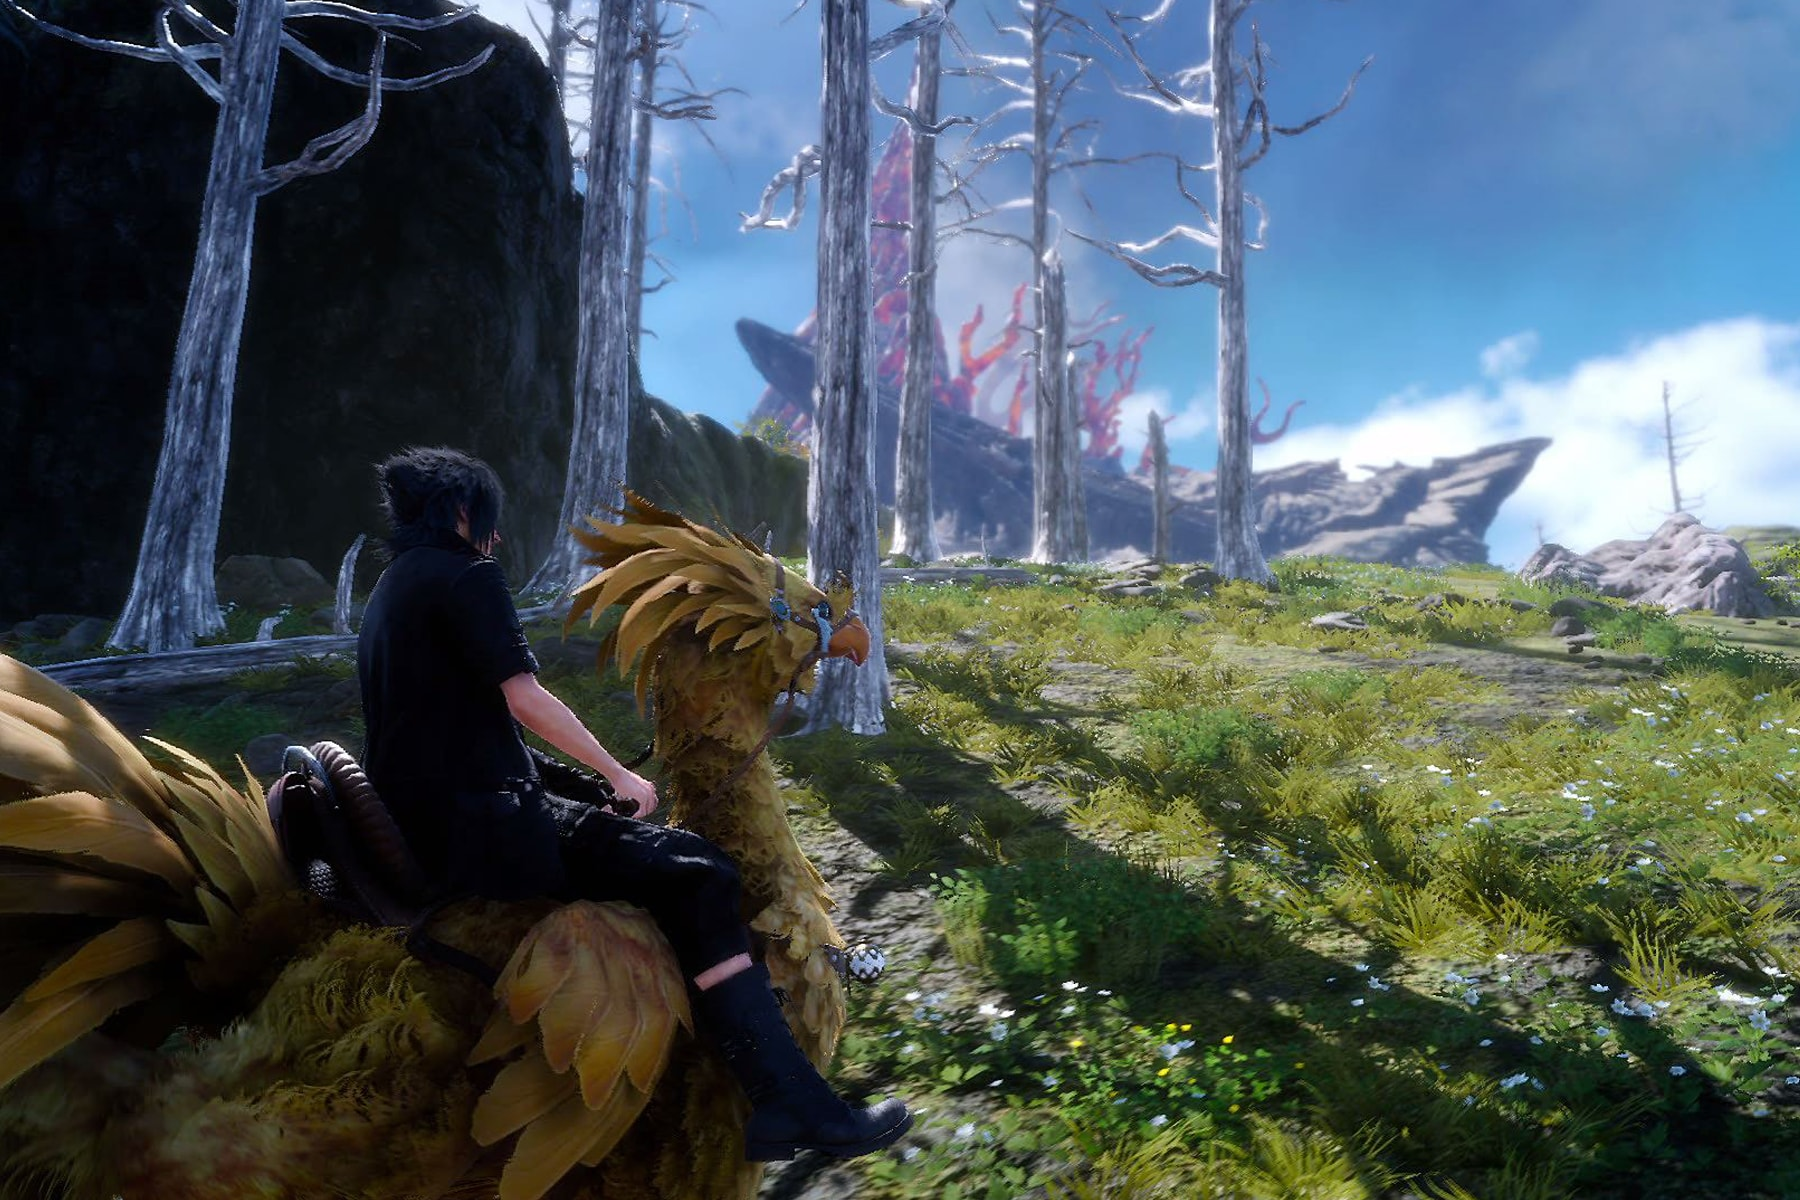 Screenshot from Final Fantasy XV featuring a character riding a bird-like creature